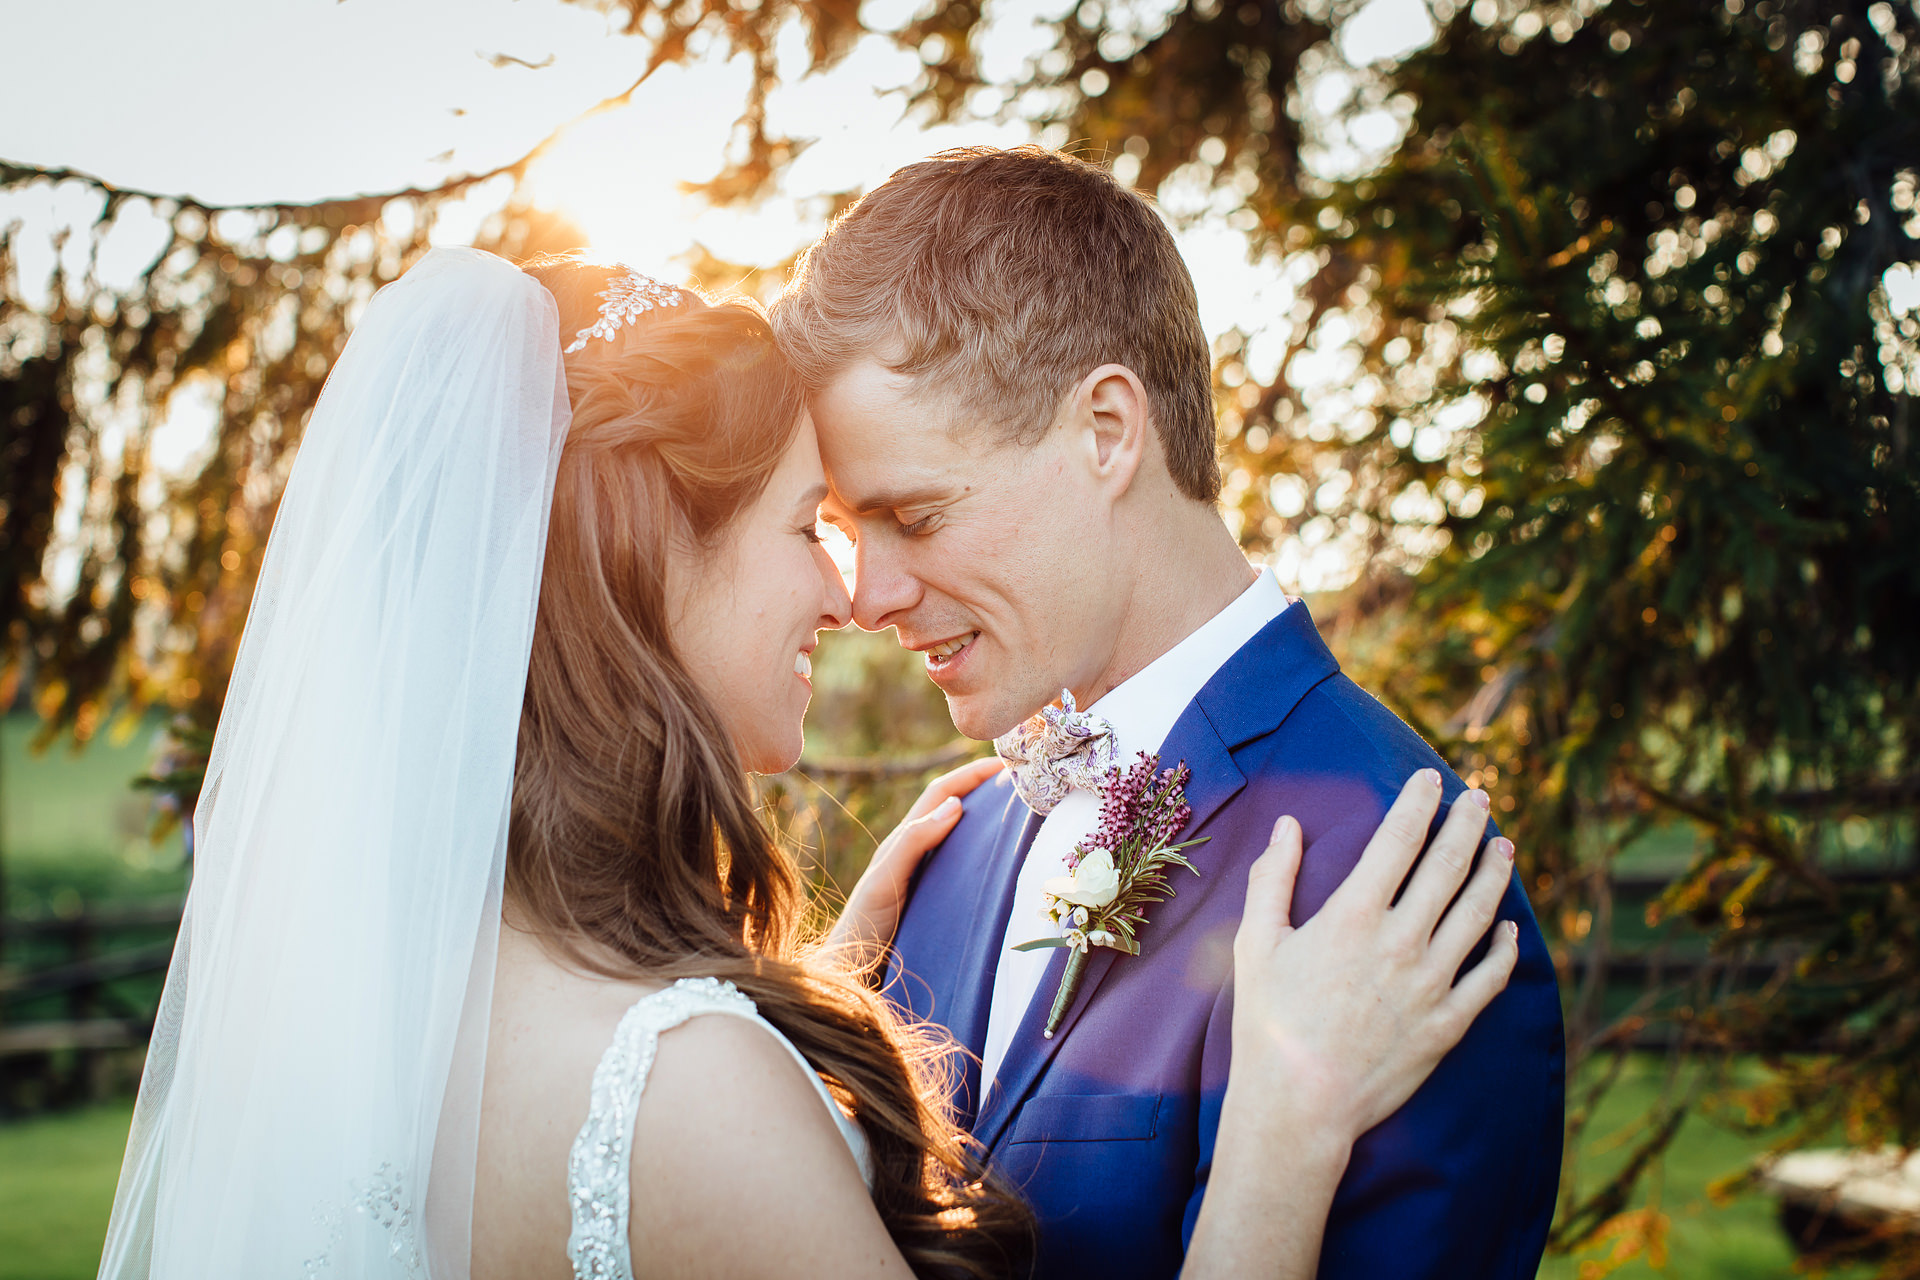 Wedding Couple touching noses in golden light